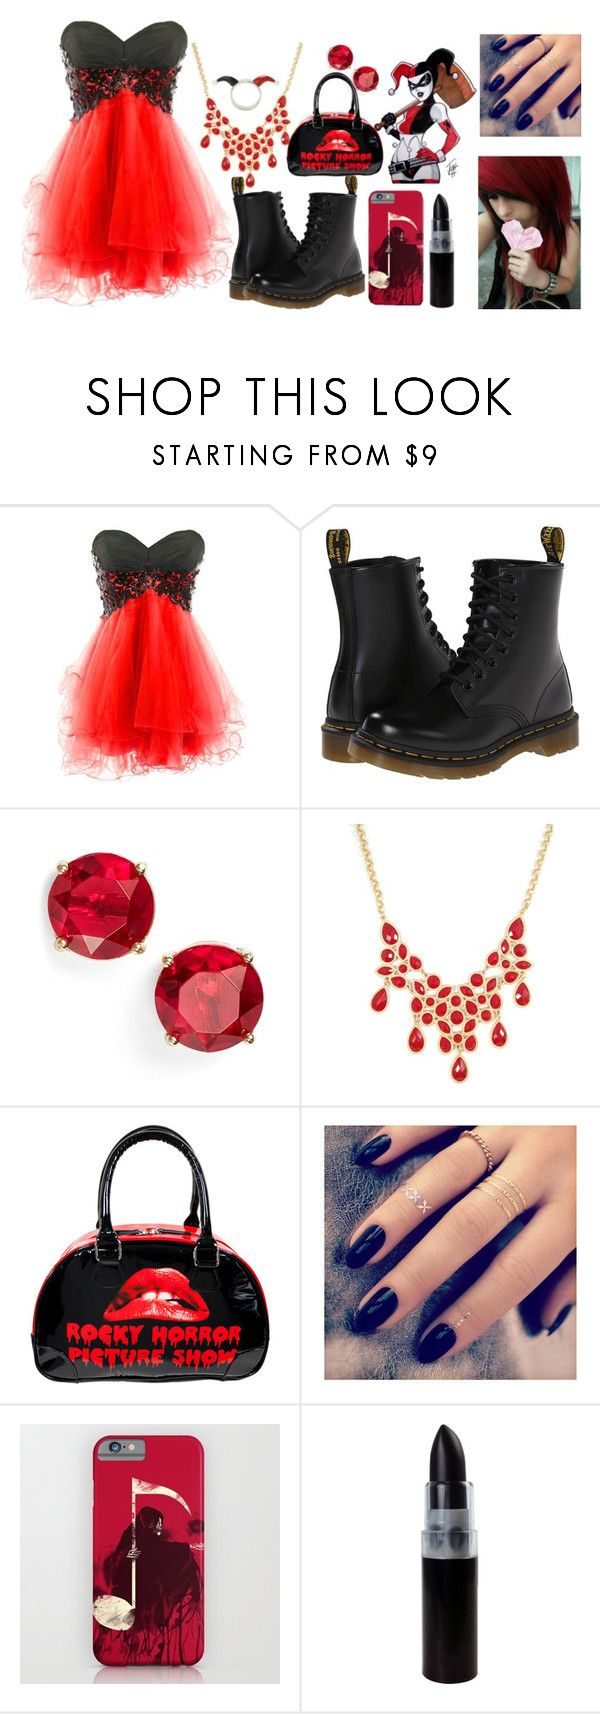 """Harley Quinn (prom)"" by trvdie ❤ liked on Polyvore featuring Dr. Martens, Anne Klein, Rock Rebel, Lottie, women's clothing, women, female, woman, misses and juniors"